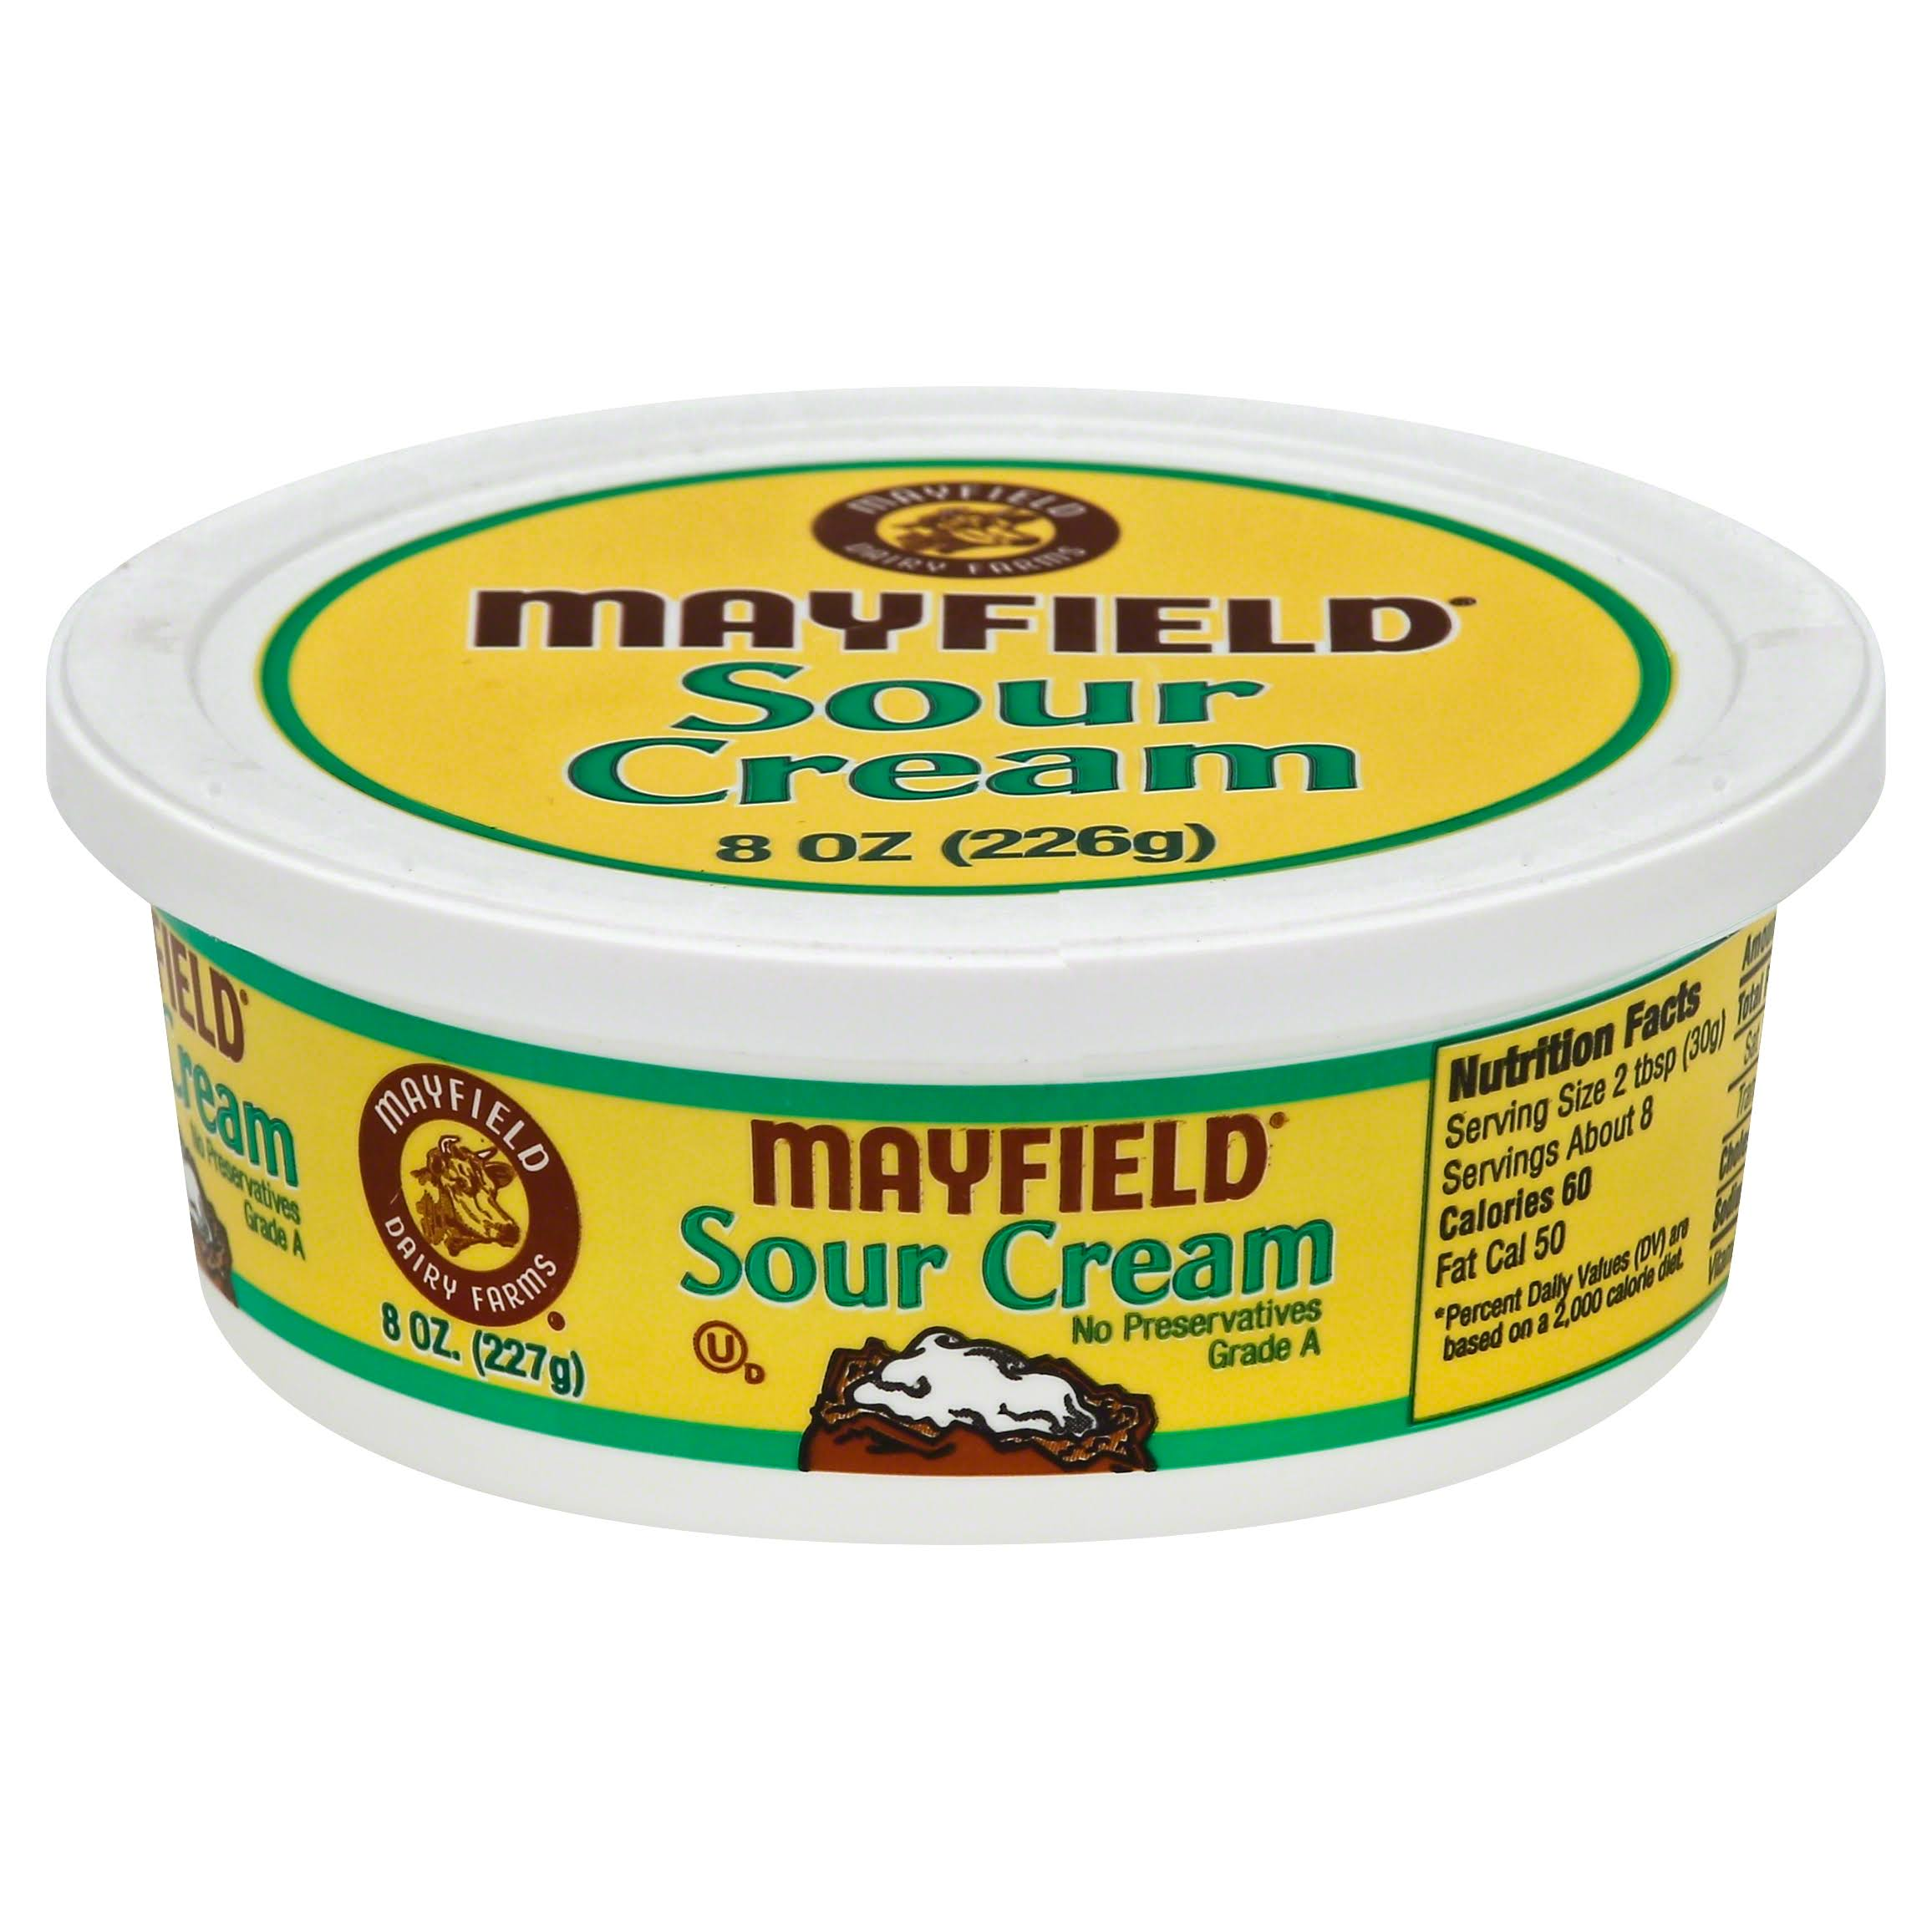 Mayfield Sour Cream - 8oz